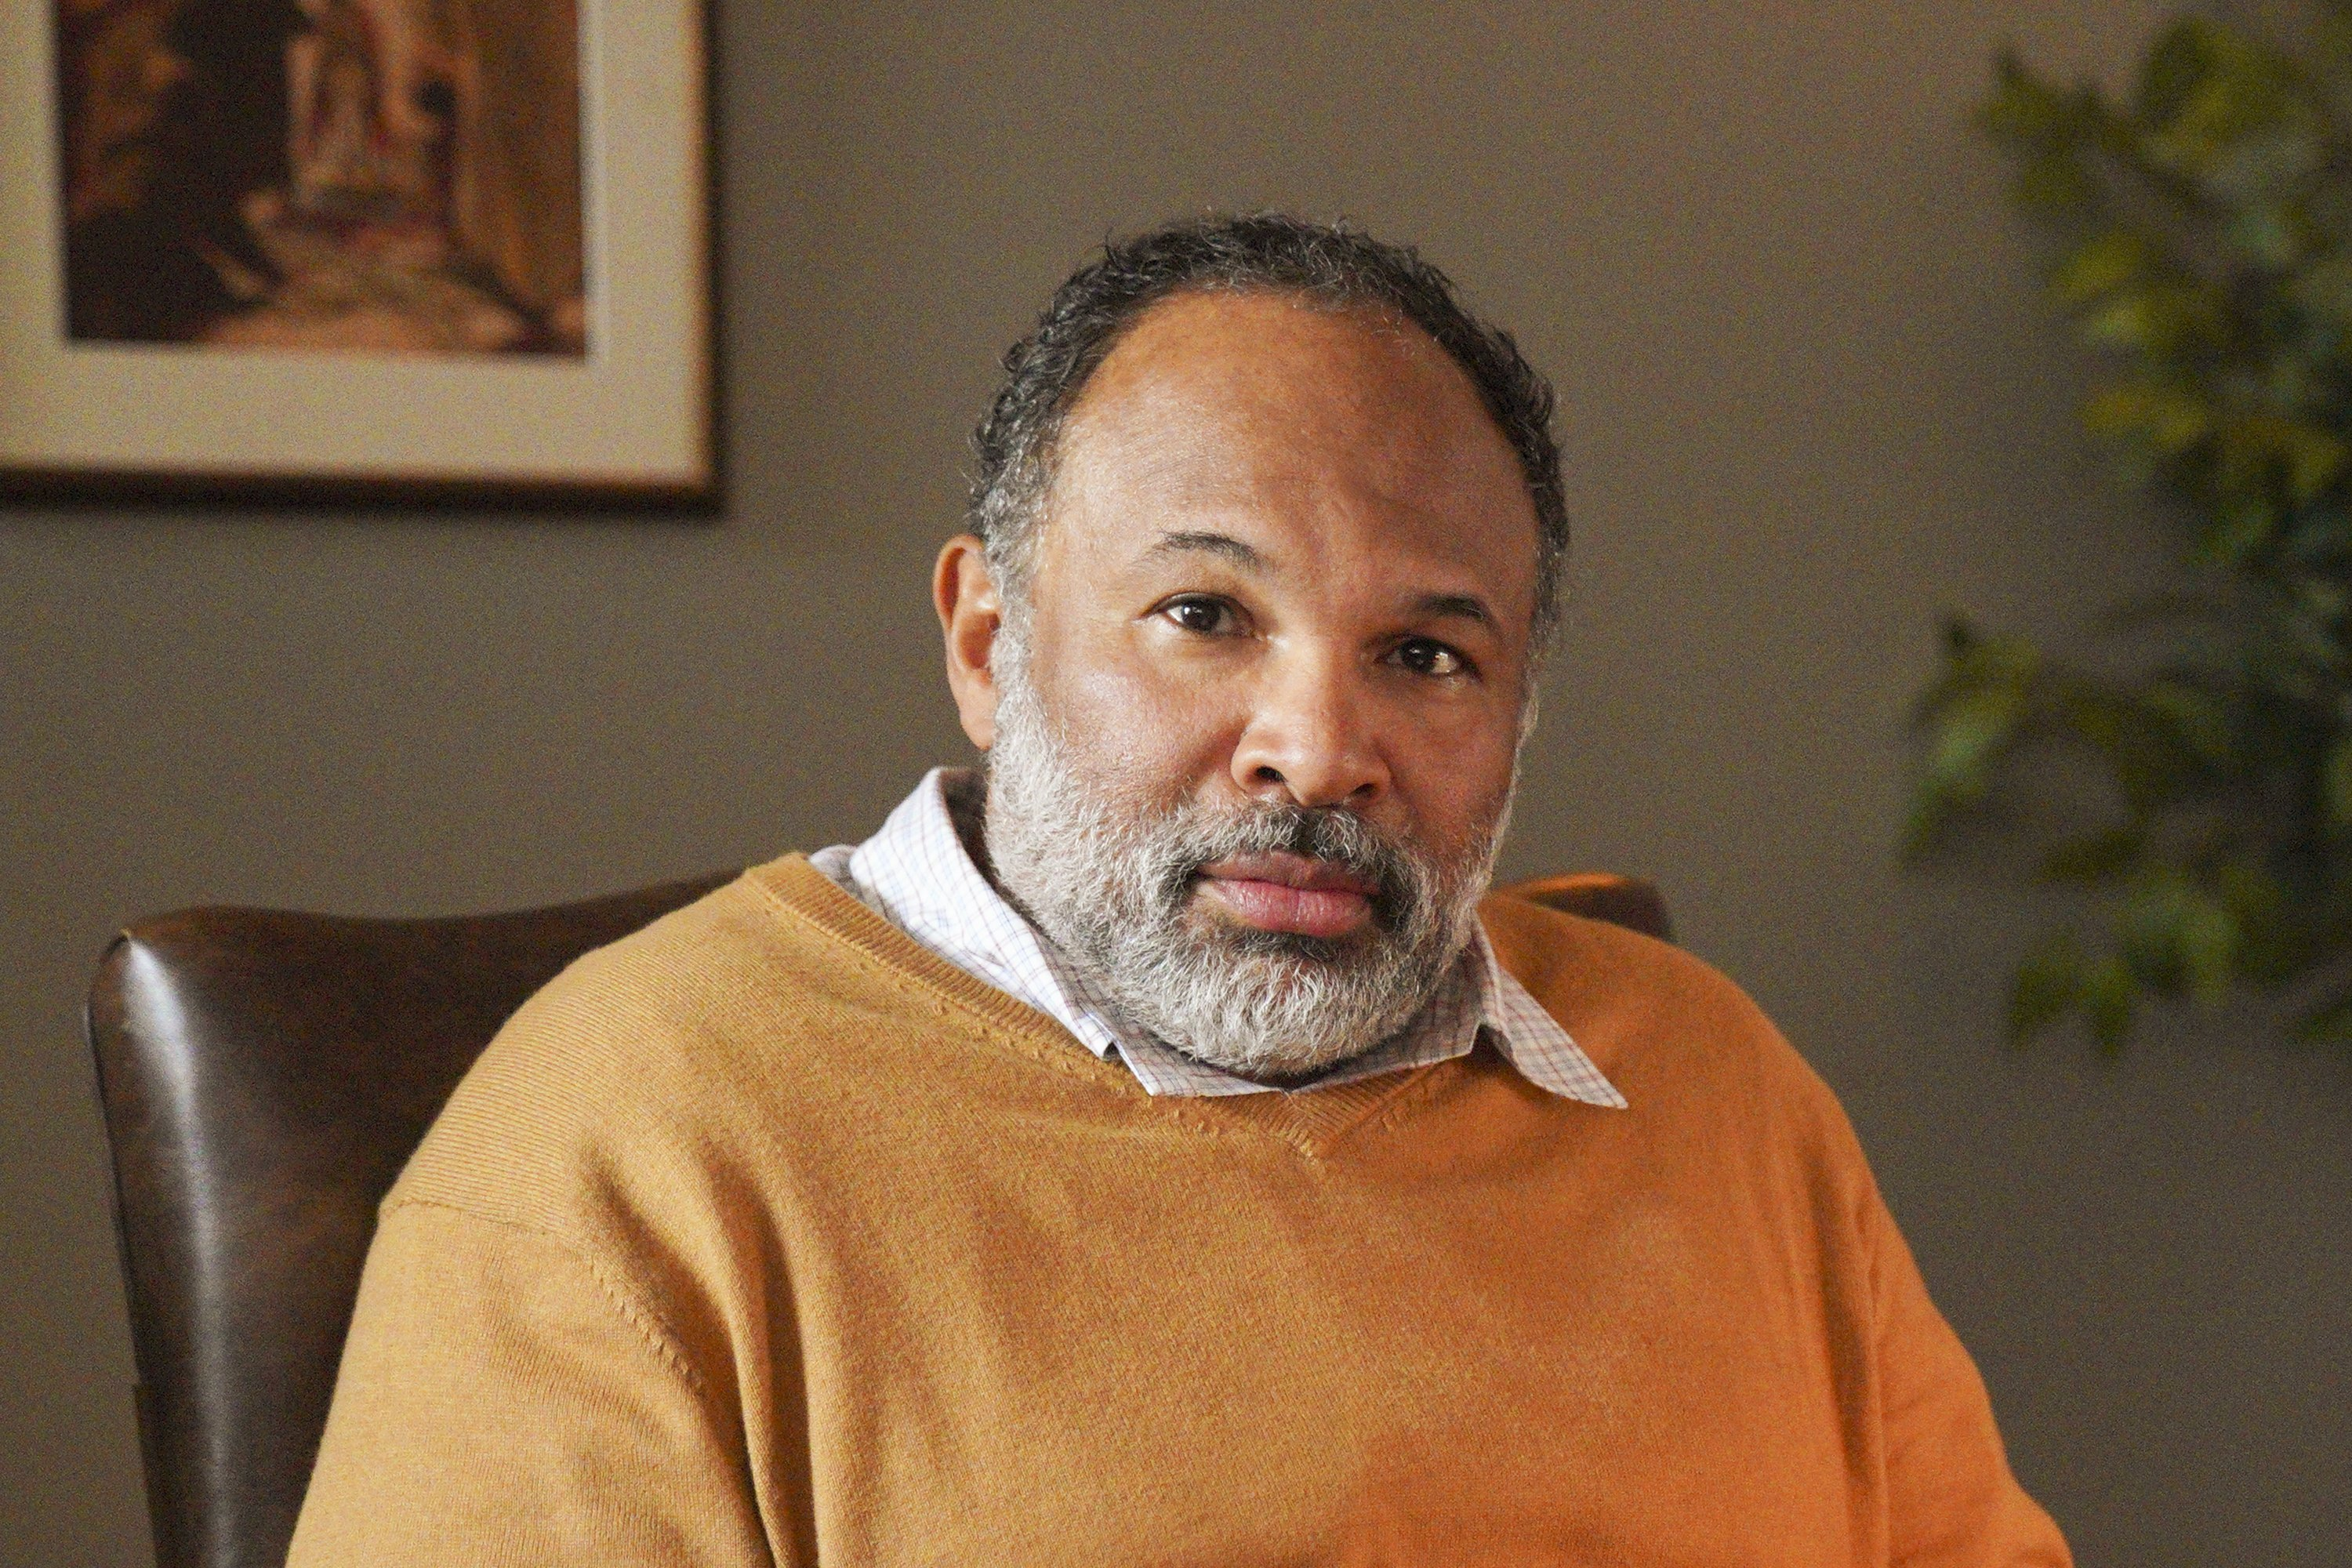 """Geoffrey Owens as Pastor Paul on """"Bless this Mess,"""" February 07, 2020 